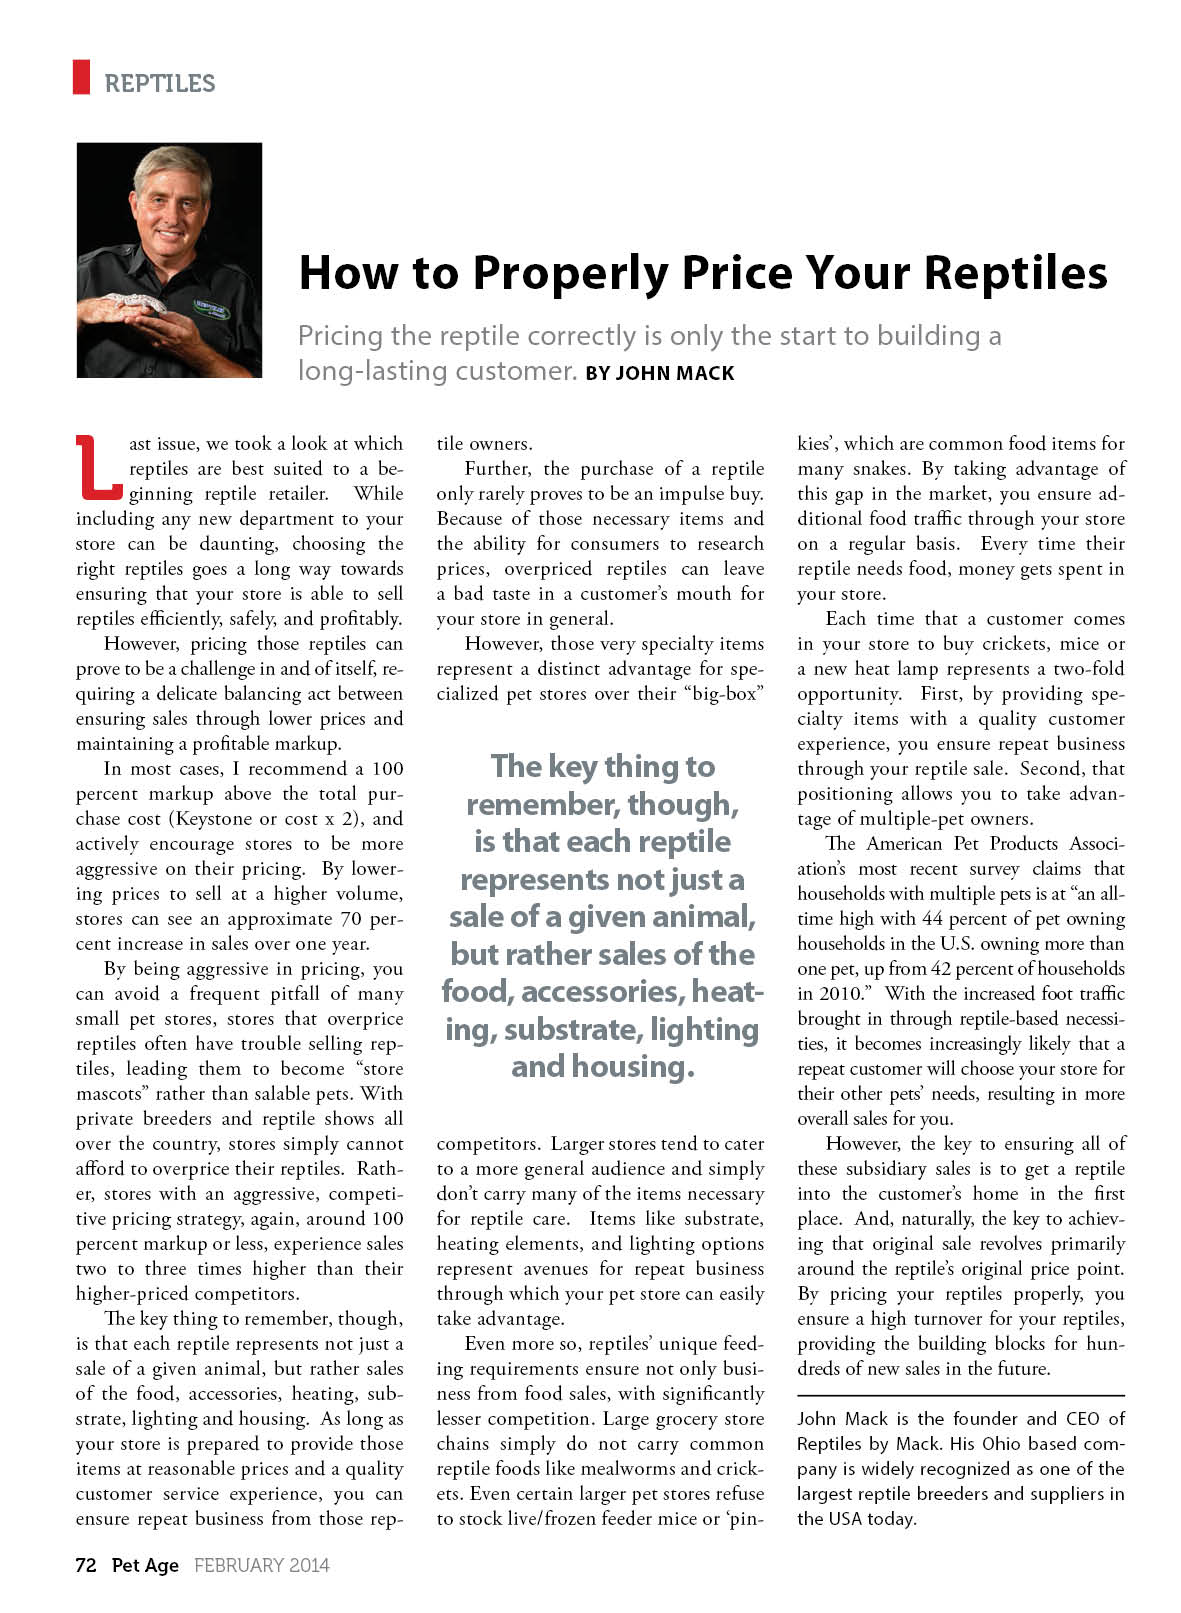 How to properly price your reptiles